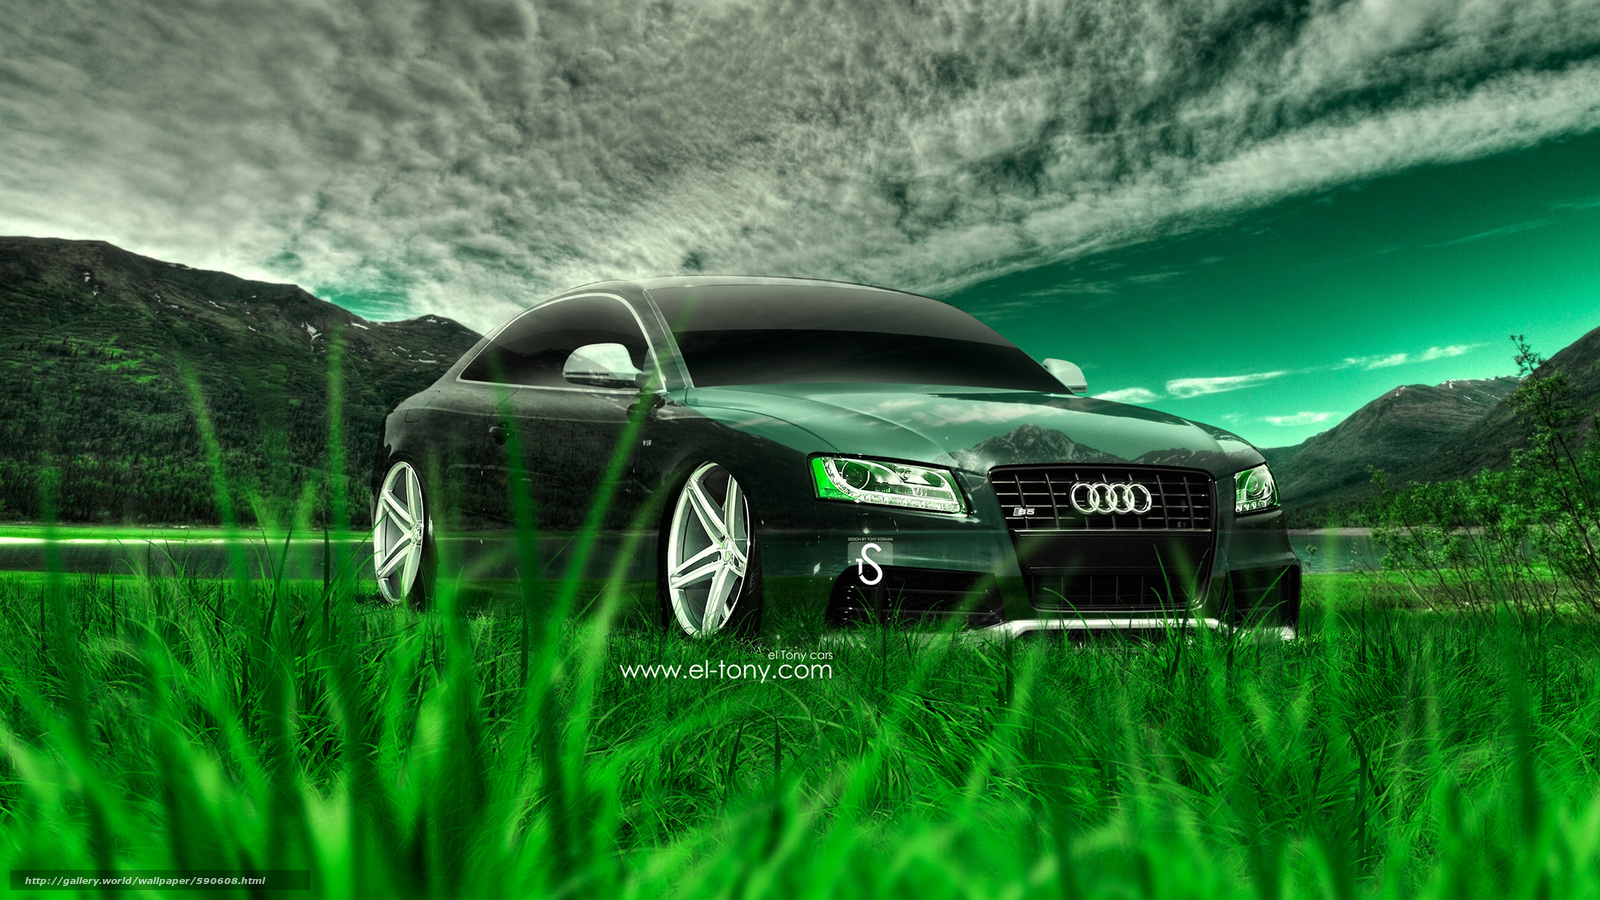 Download wallpaper Tony Kokhan,  Audi,  S5,  Crystal free desktop wallpaper in the resolution 1920x1080 — picture №590608